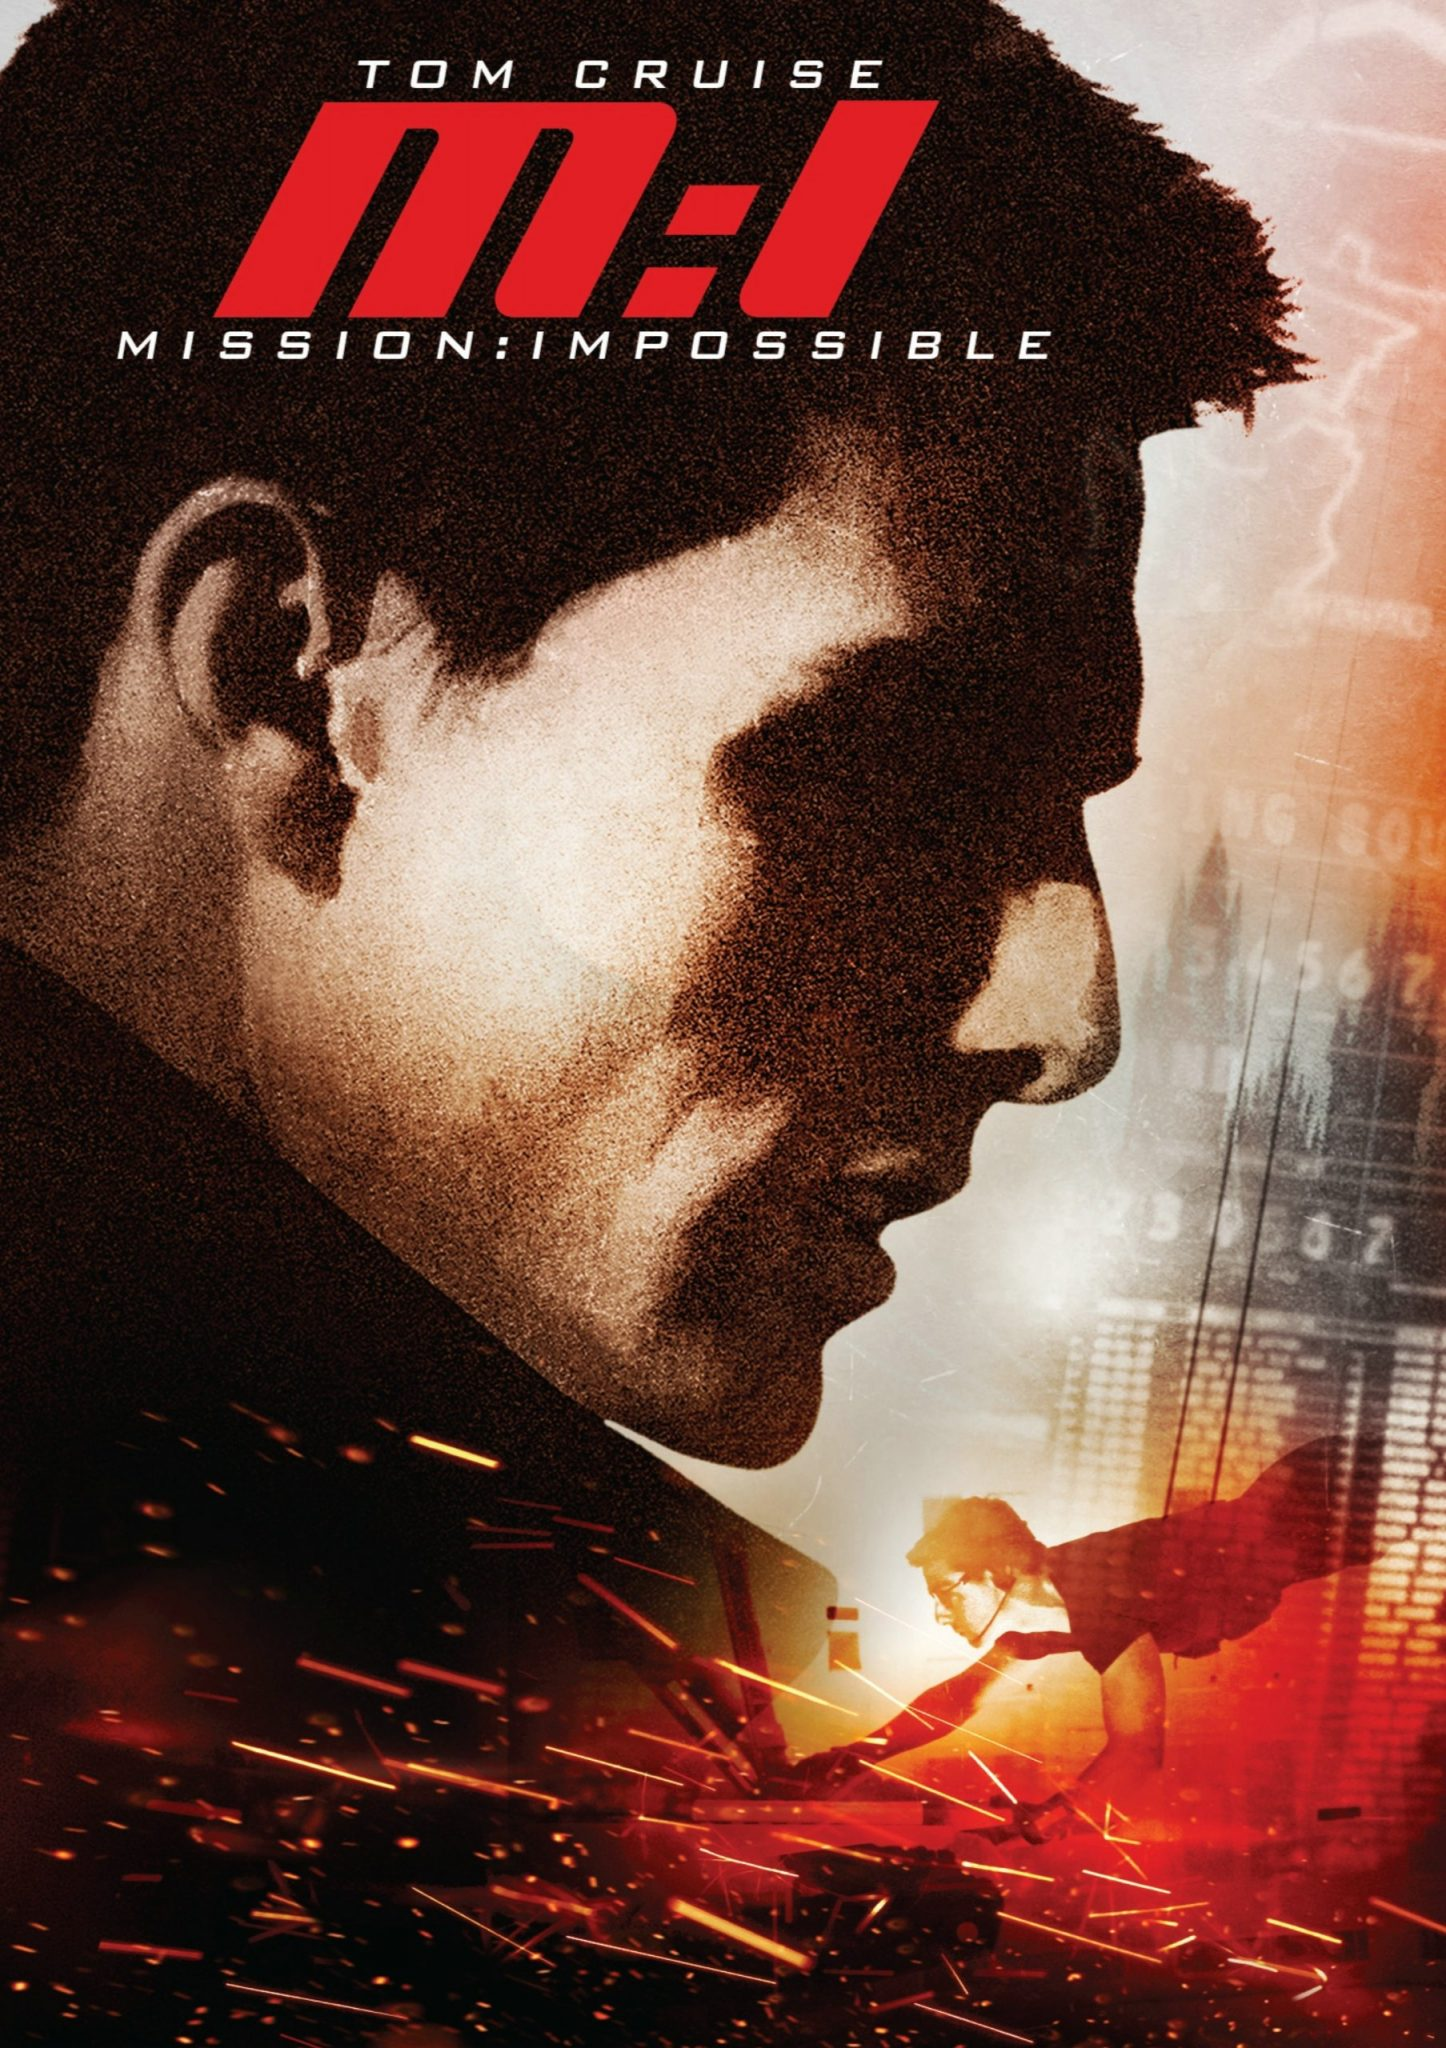 Mission - Impossible 1996 In Hindi Full Movie Watch Online Free - Hindilinks4Uto-9770